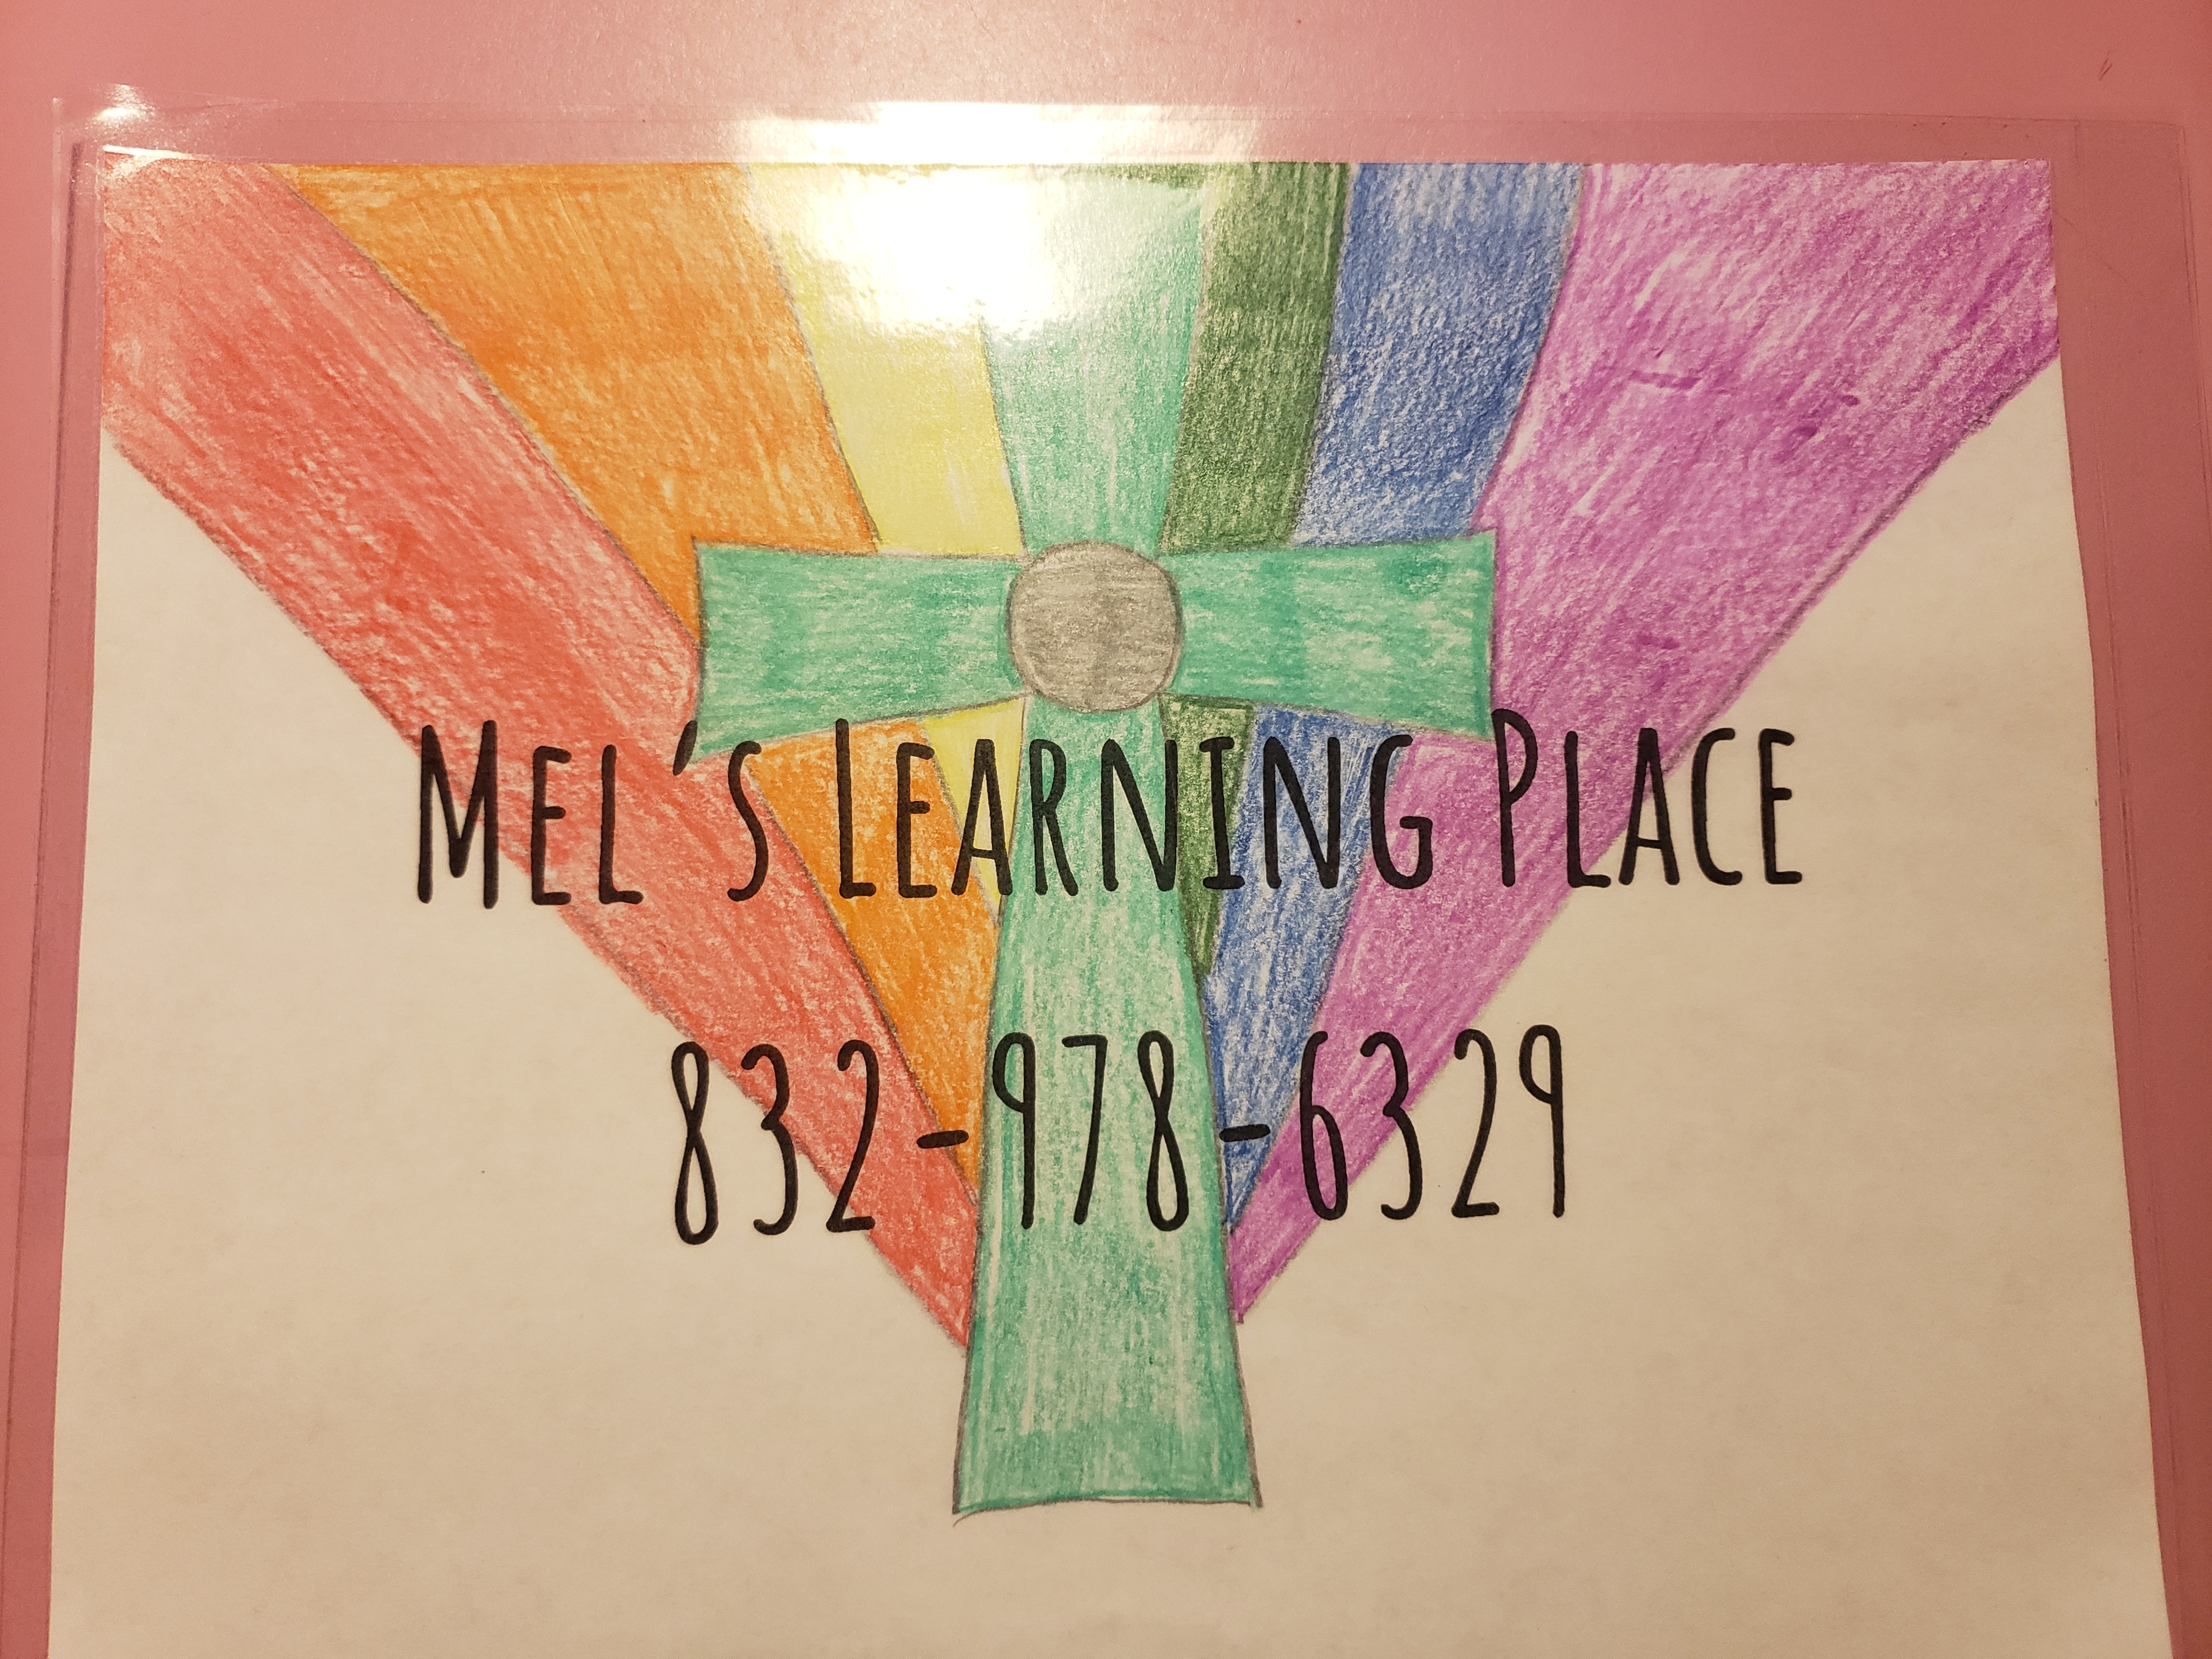 Mel's Learning Place